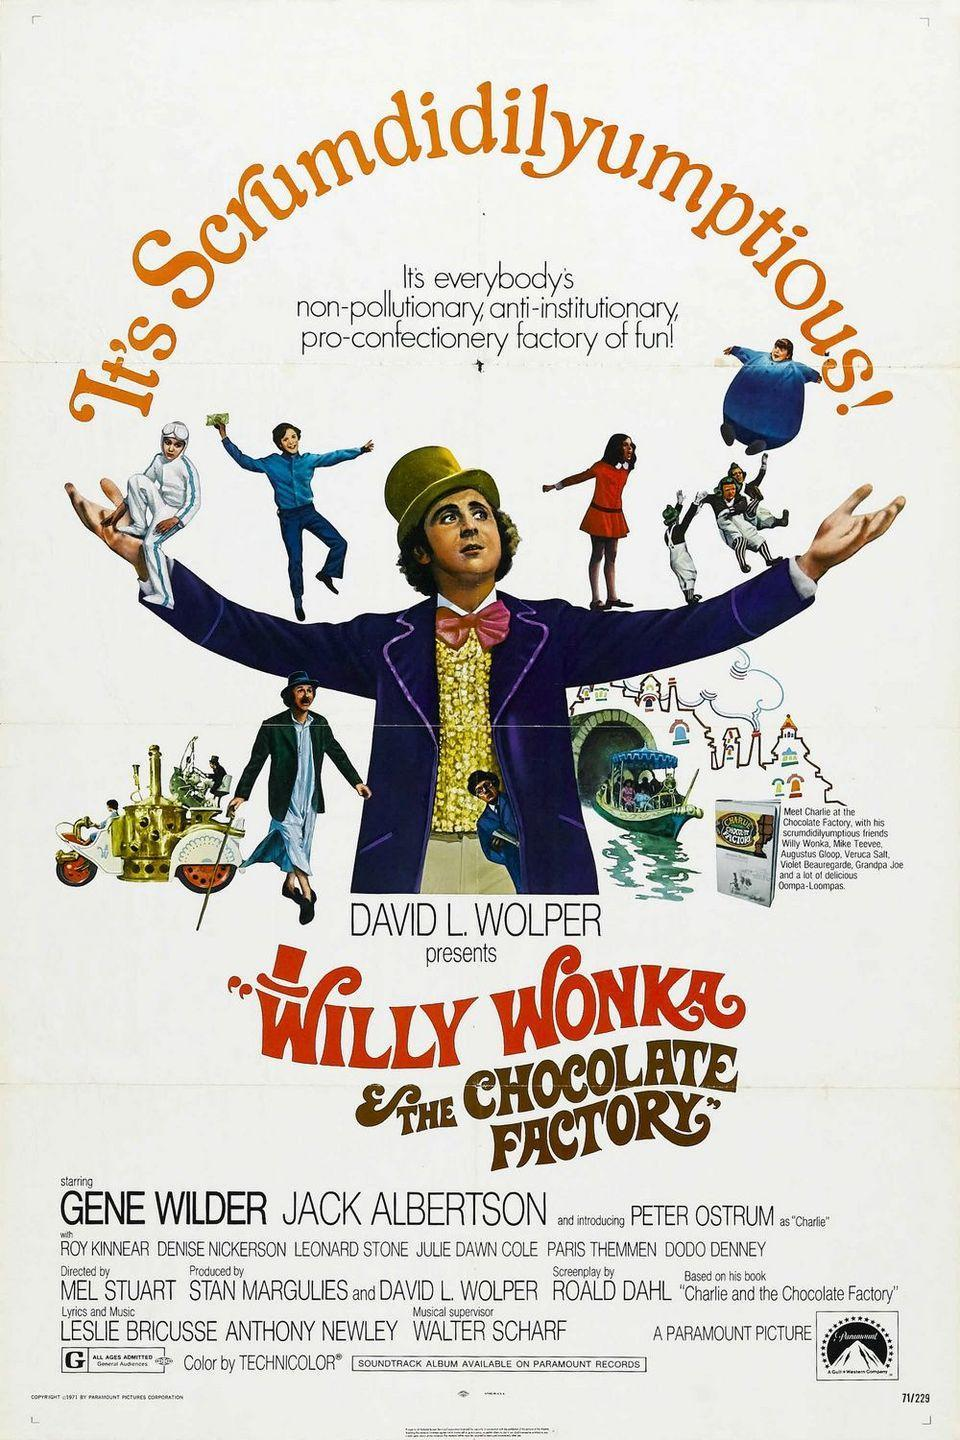 "<p>While it's not typically considered a ""musical,"" Gene Wilder's kooky candy inventor is one of the most beloved characters of all time and technically... there<em> is</em> music. Willy Wonka is a movie that parents share with their kids and it keeps getting passed down from generation to generation. It's hard not to get choked up whenever ""Pure Imagination"" starts or get immediately brought back to your childhood when you see an Oompa Loompa on-screen. Even if it is a bit... dark.</p><p><a class=""link rapid-noclick-resp"" href=""https://www.amazon.com/Willy-Wonka-Chocolate-Factory-Wilder/dp/B002YNGNG6/ref=sr_1_1?tag=syn-yahoo-20&ascsubtag=%5Bartid%7C10063.g.34344525%5Bsrc%7Cyahoo-us"" rel=""nofollow noopener"" target=""_blank"" data-ylk=""slk:WATCH NOW"">WATCH NOW</a></p>"